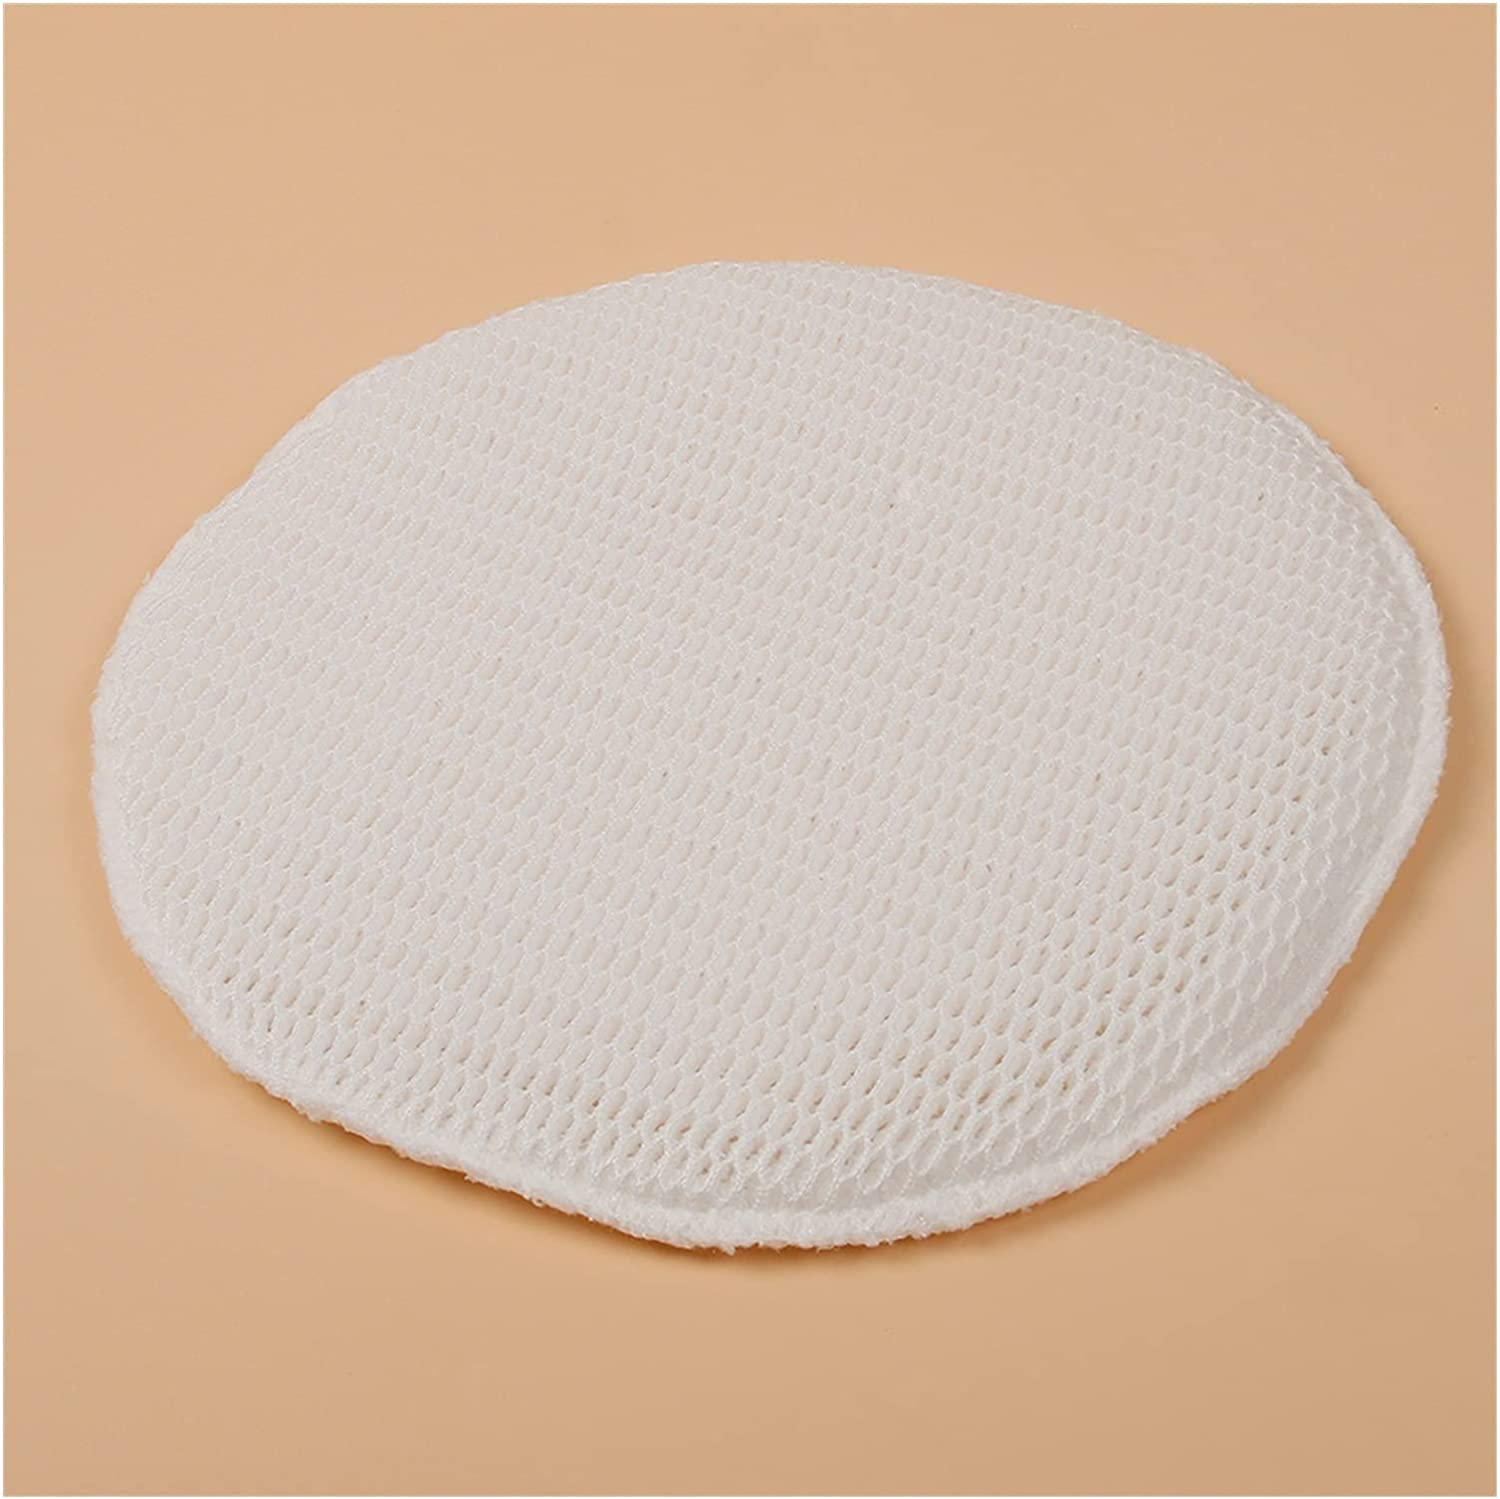 WANGXUE WXER Branded goods 1 2 3pcs Air Purifier Filter OFFicial for Pan Humidification